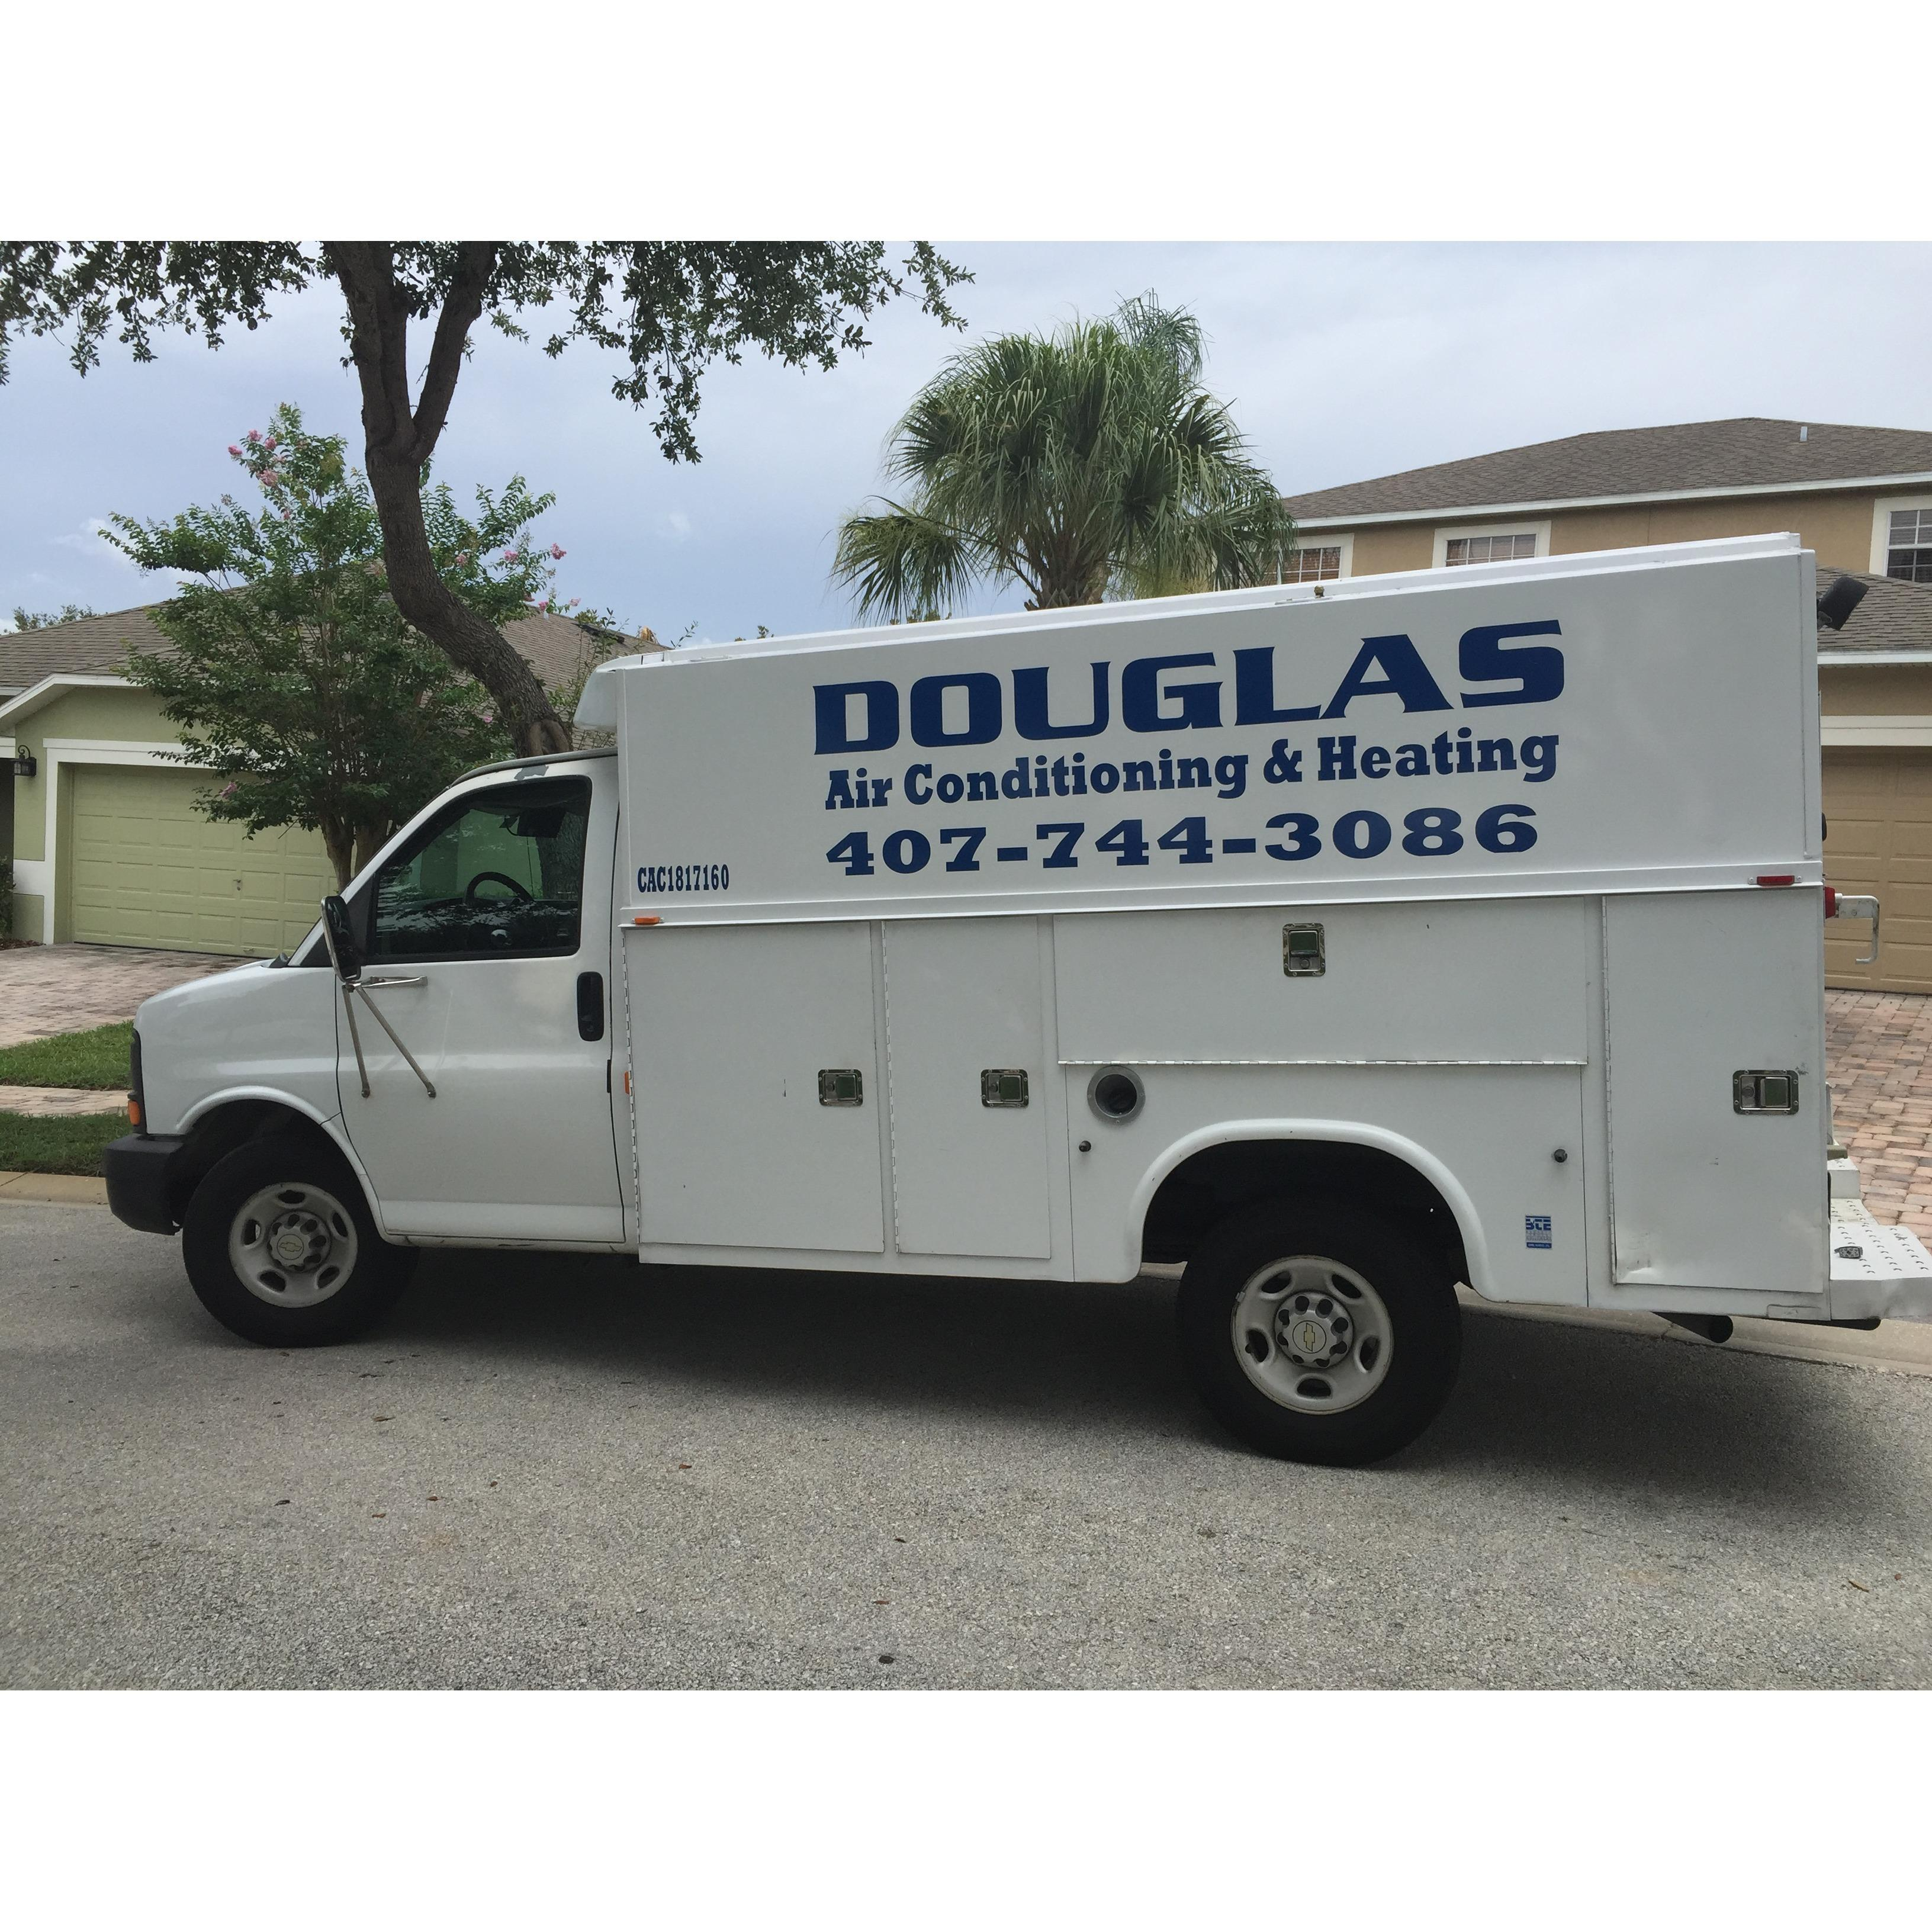 Douglas Air Conditioning and Heating, LLC image 1